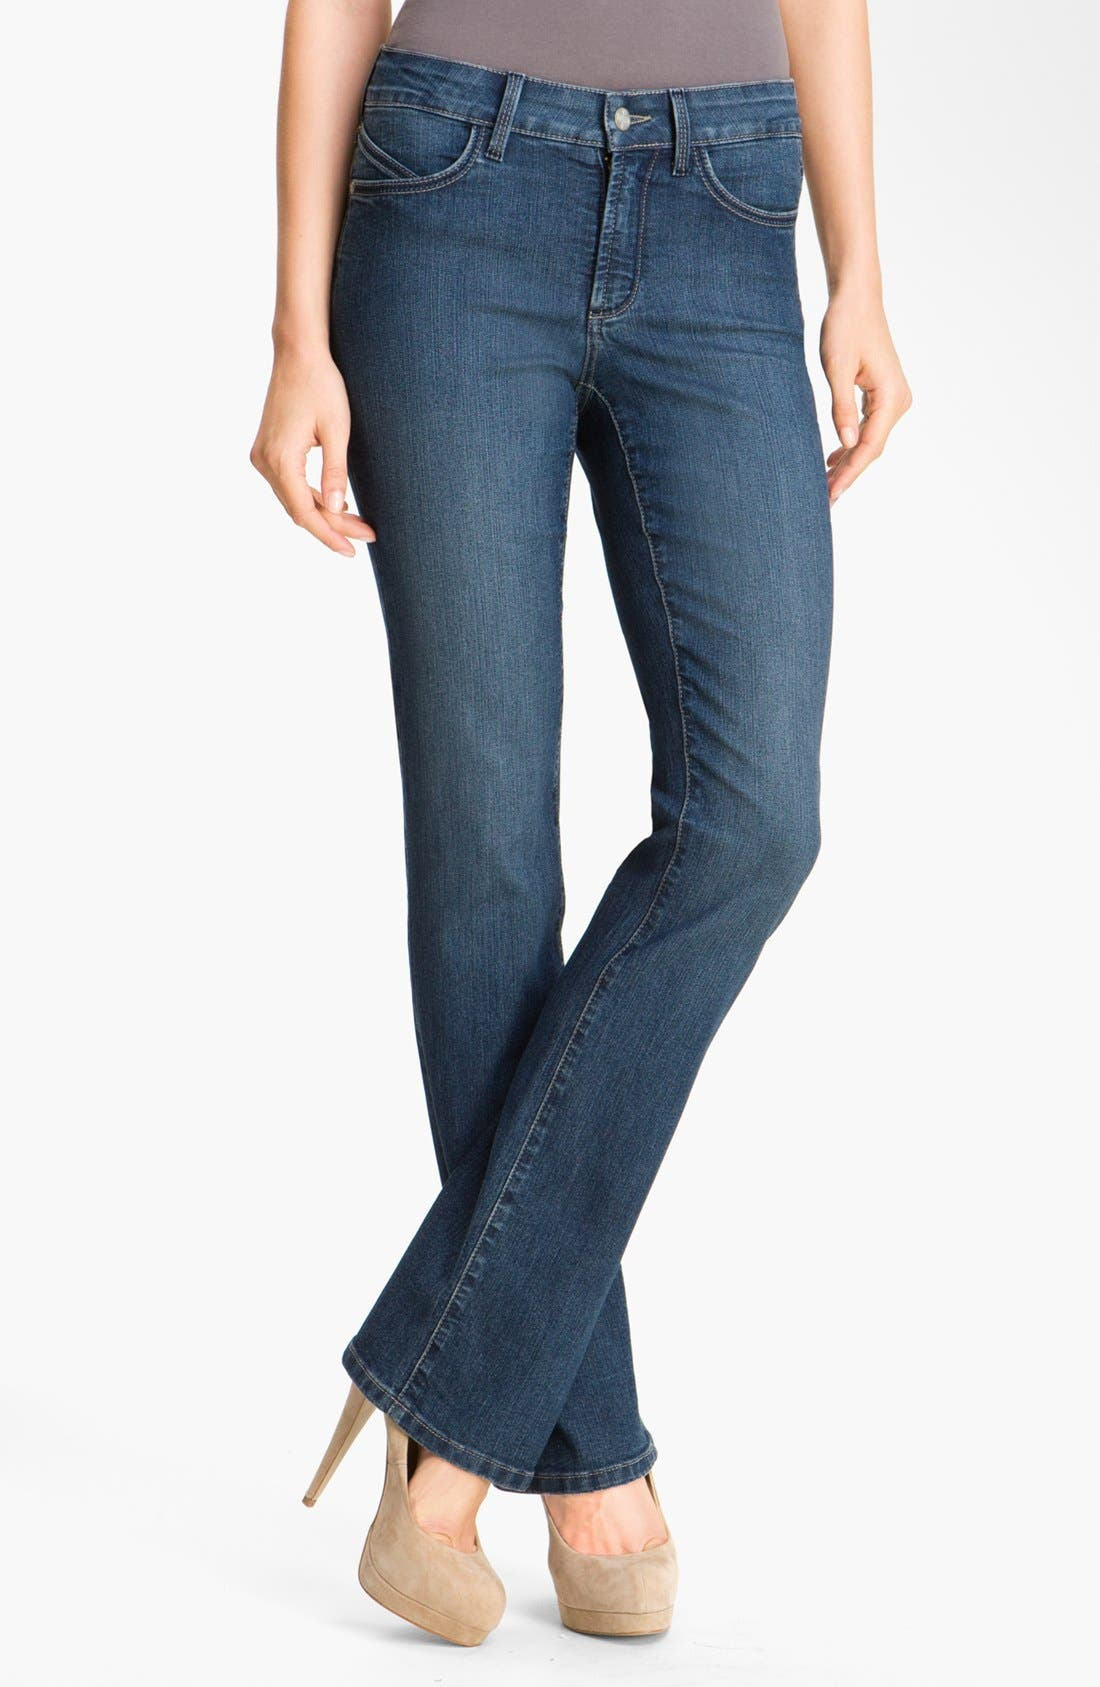 Alternate Image 1 Selected - NYDJ 'Barbara' Embellished Bootcut Stretch Jeans (Petite)